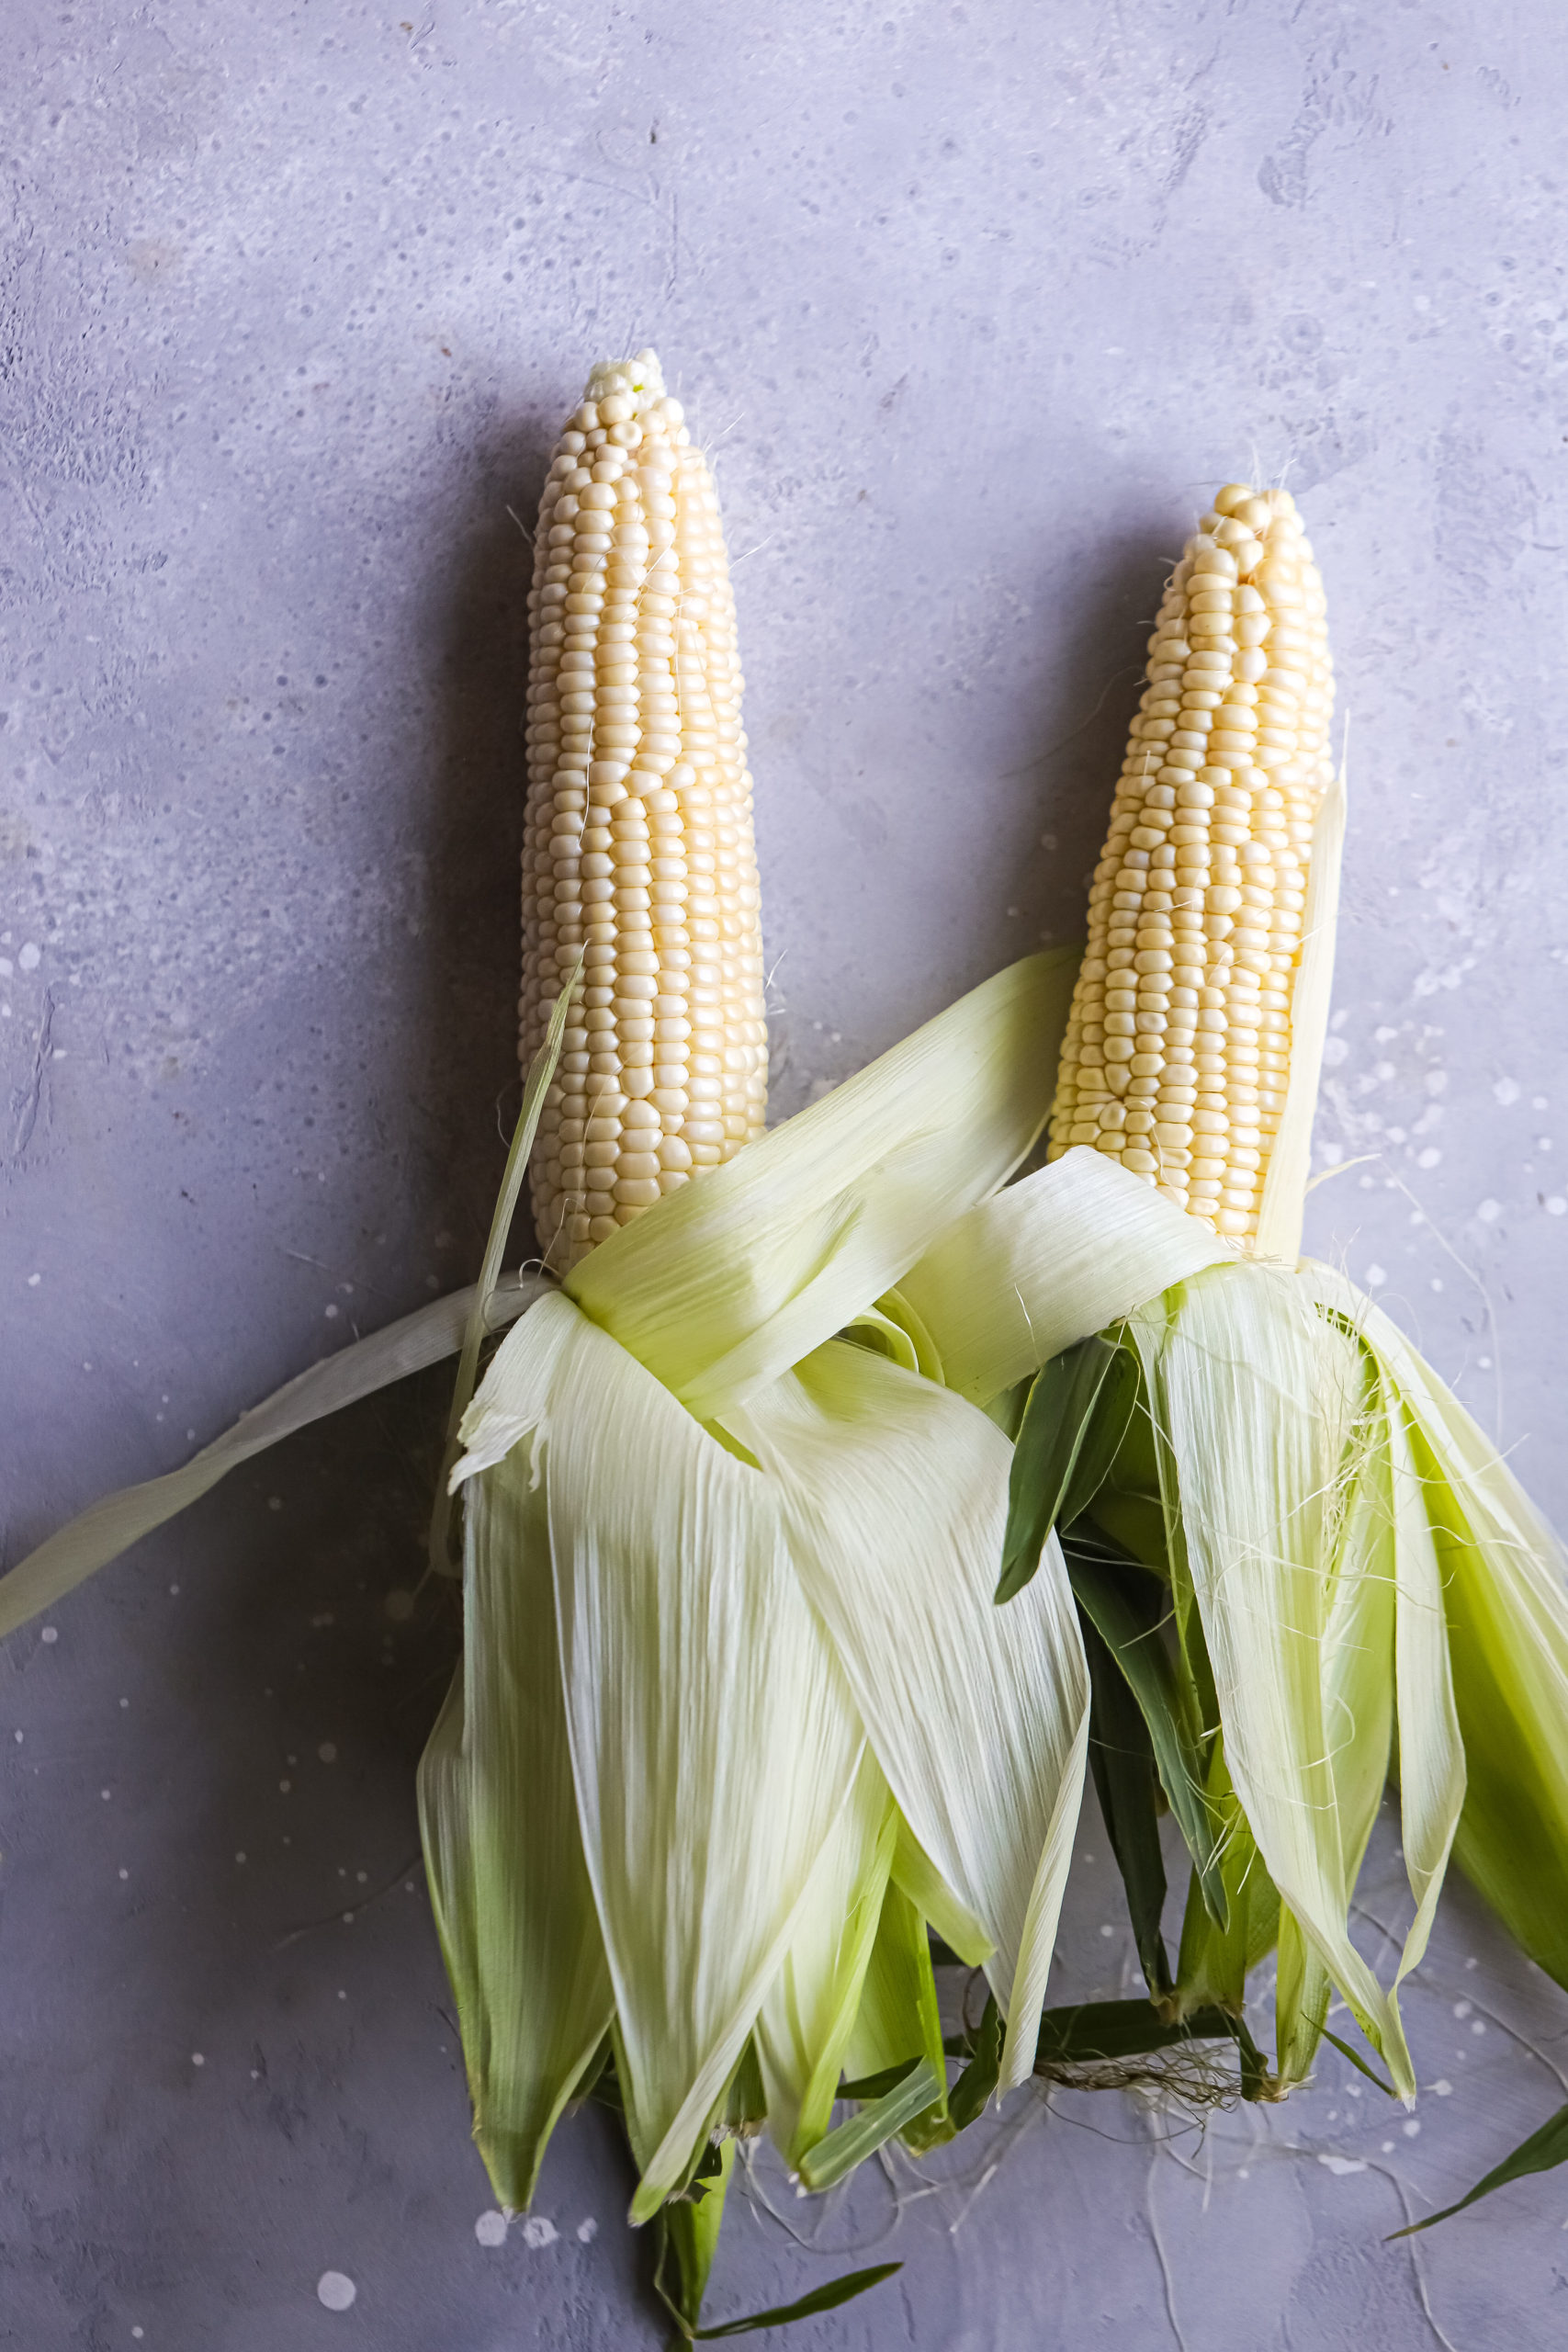 Sweet Corn scaled